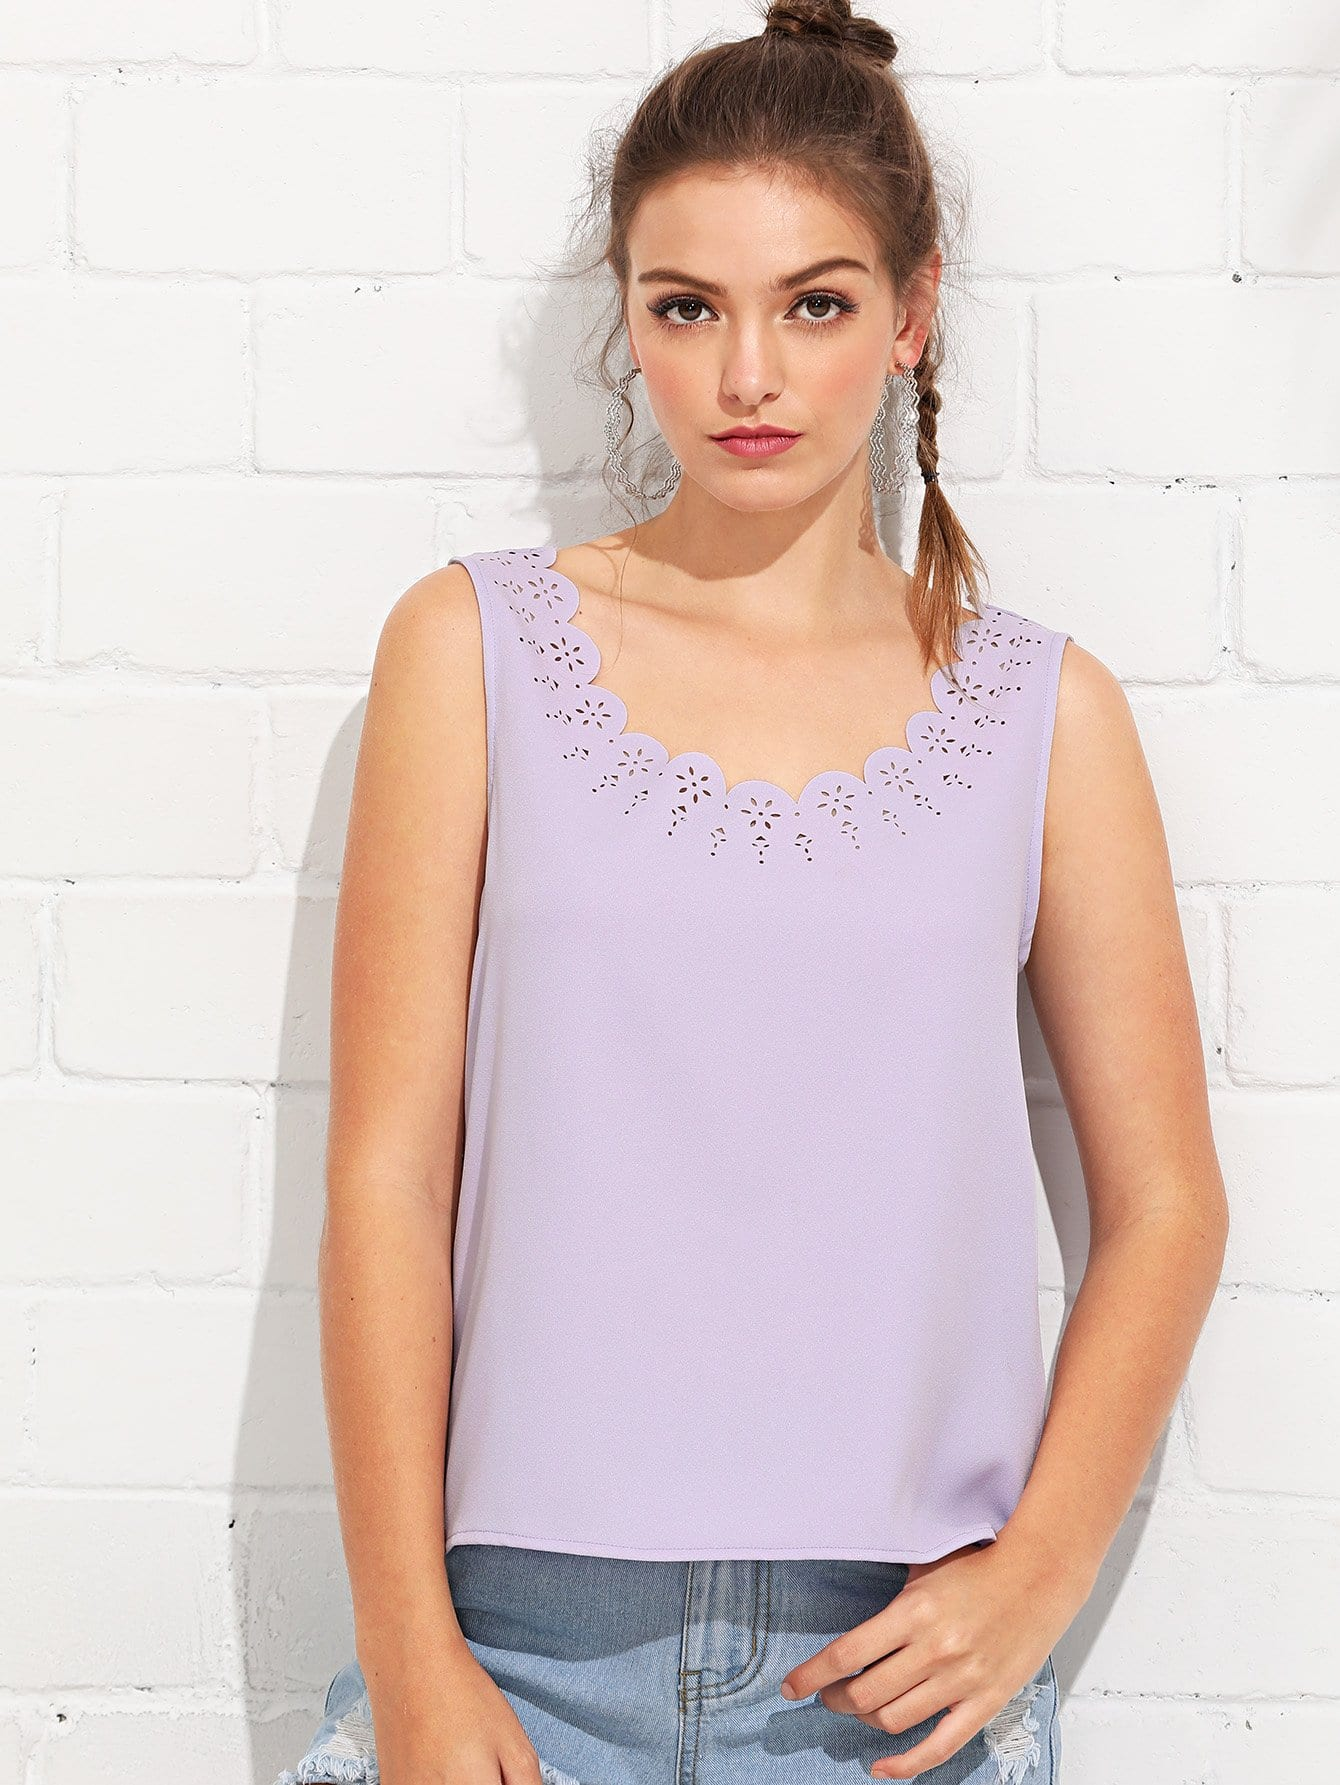 Scallop Laser Cut Tank Top scallop laser cut out textured tank top